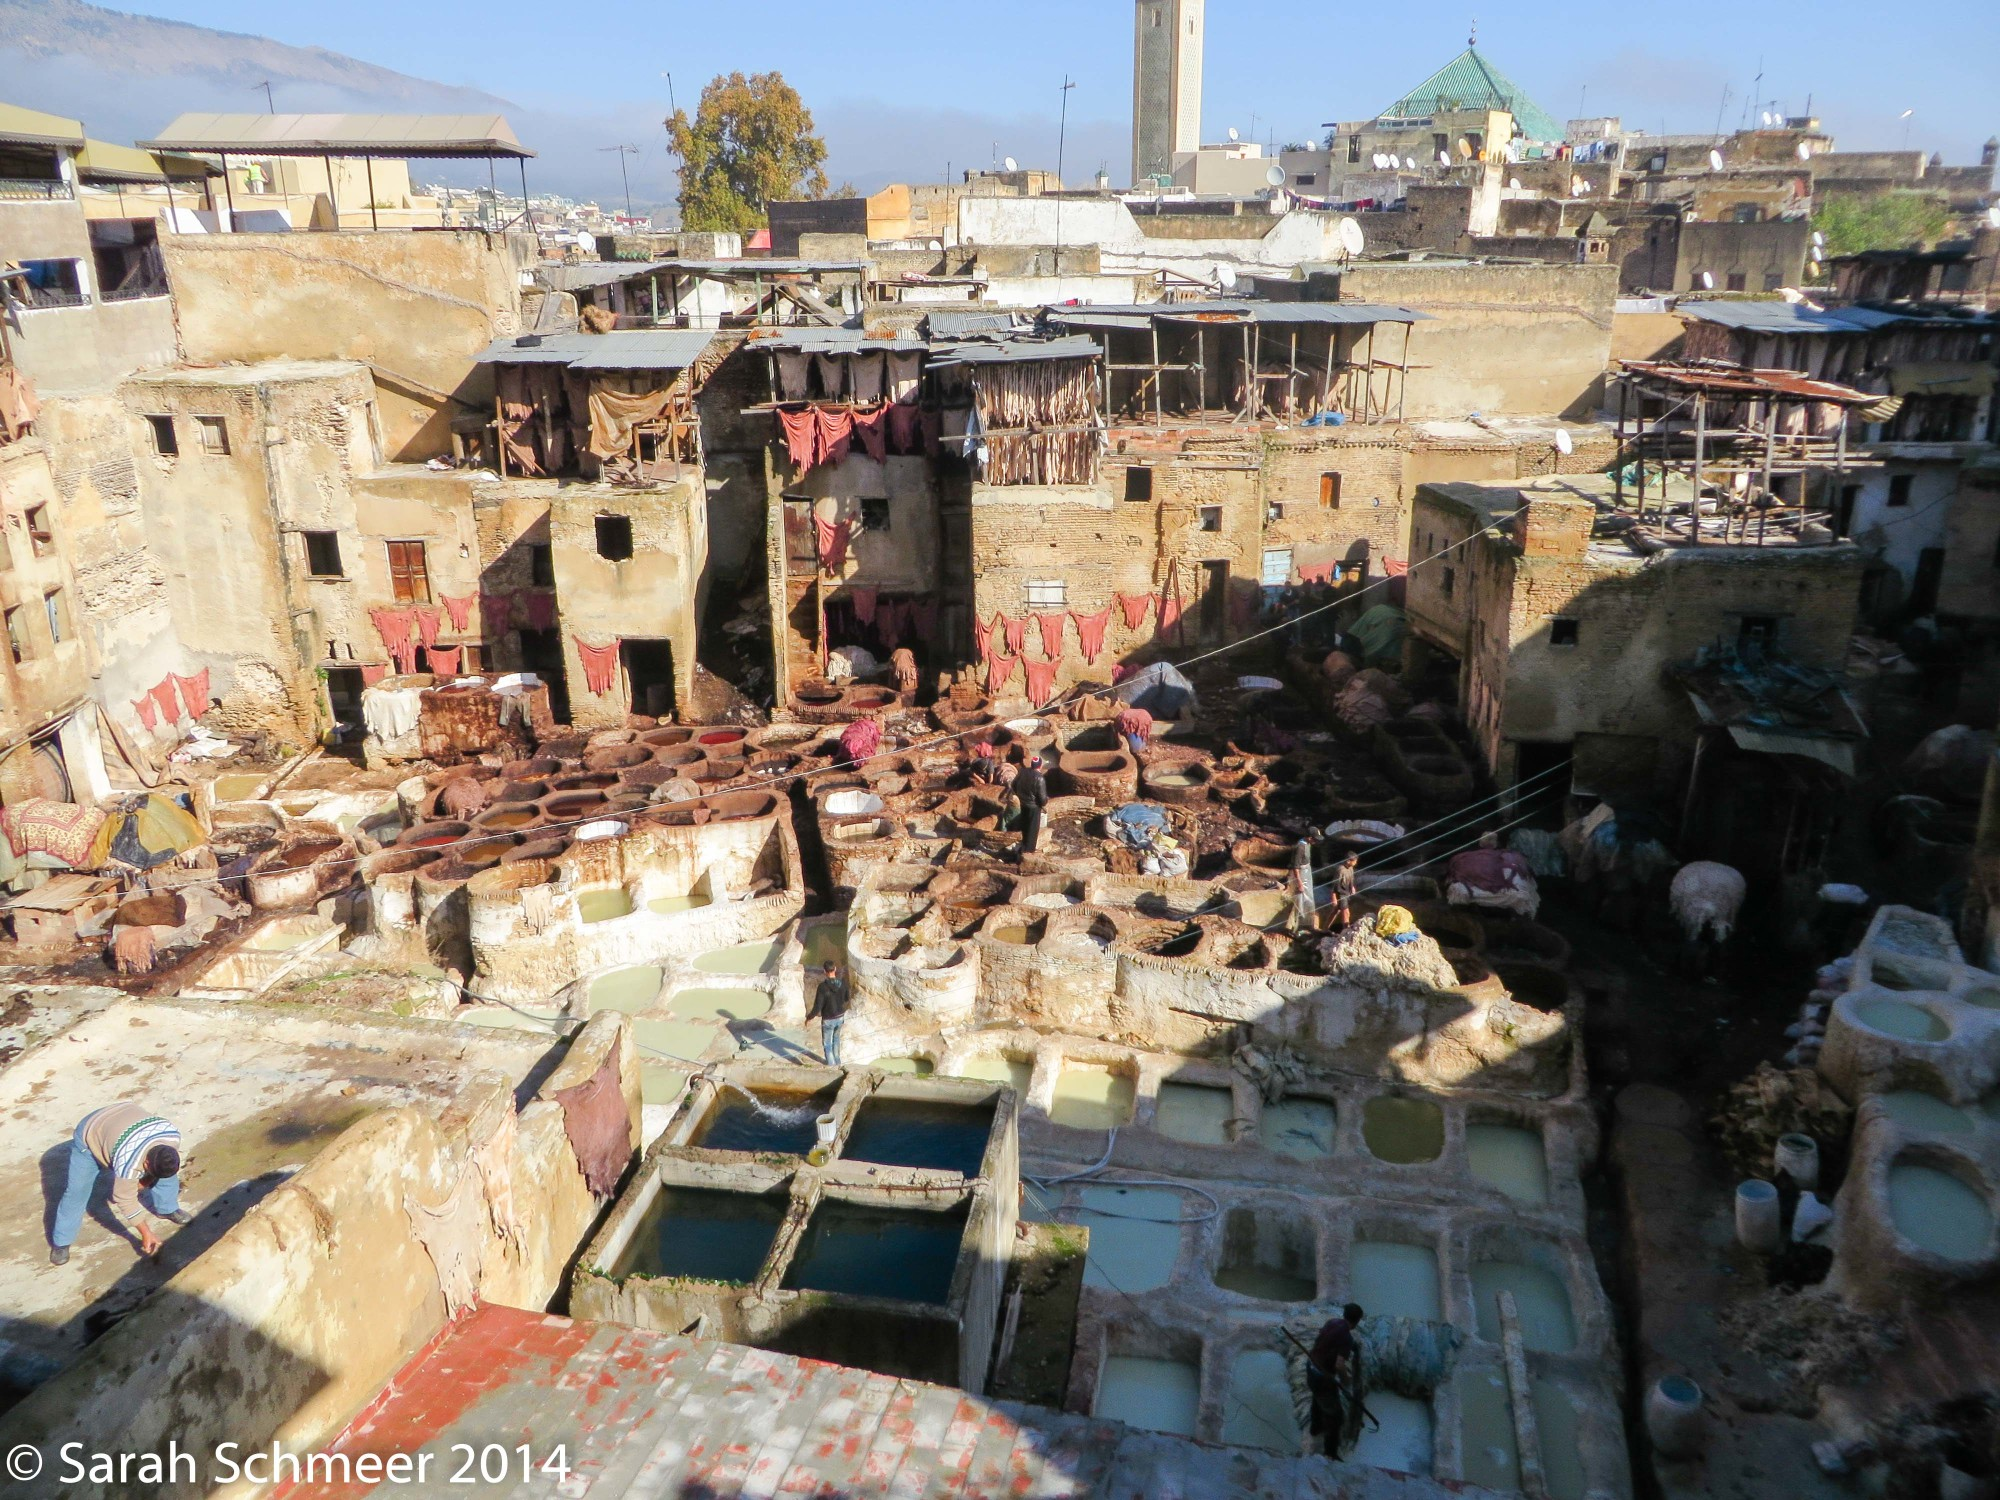 The famous and ancient open-air tanneries of Fes, Morocco